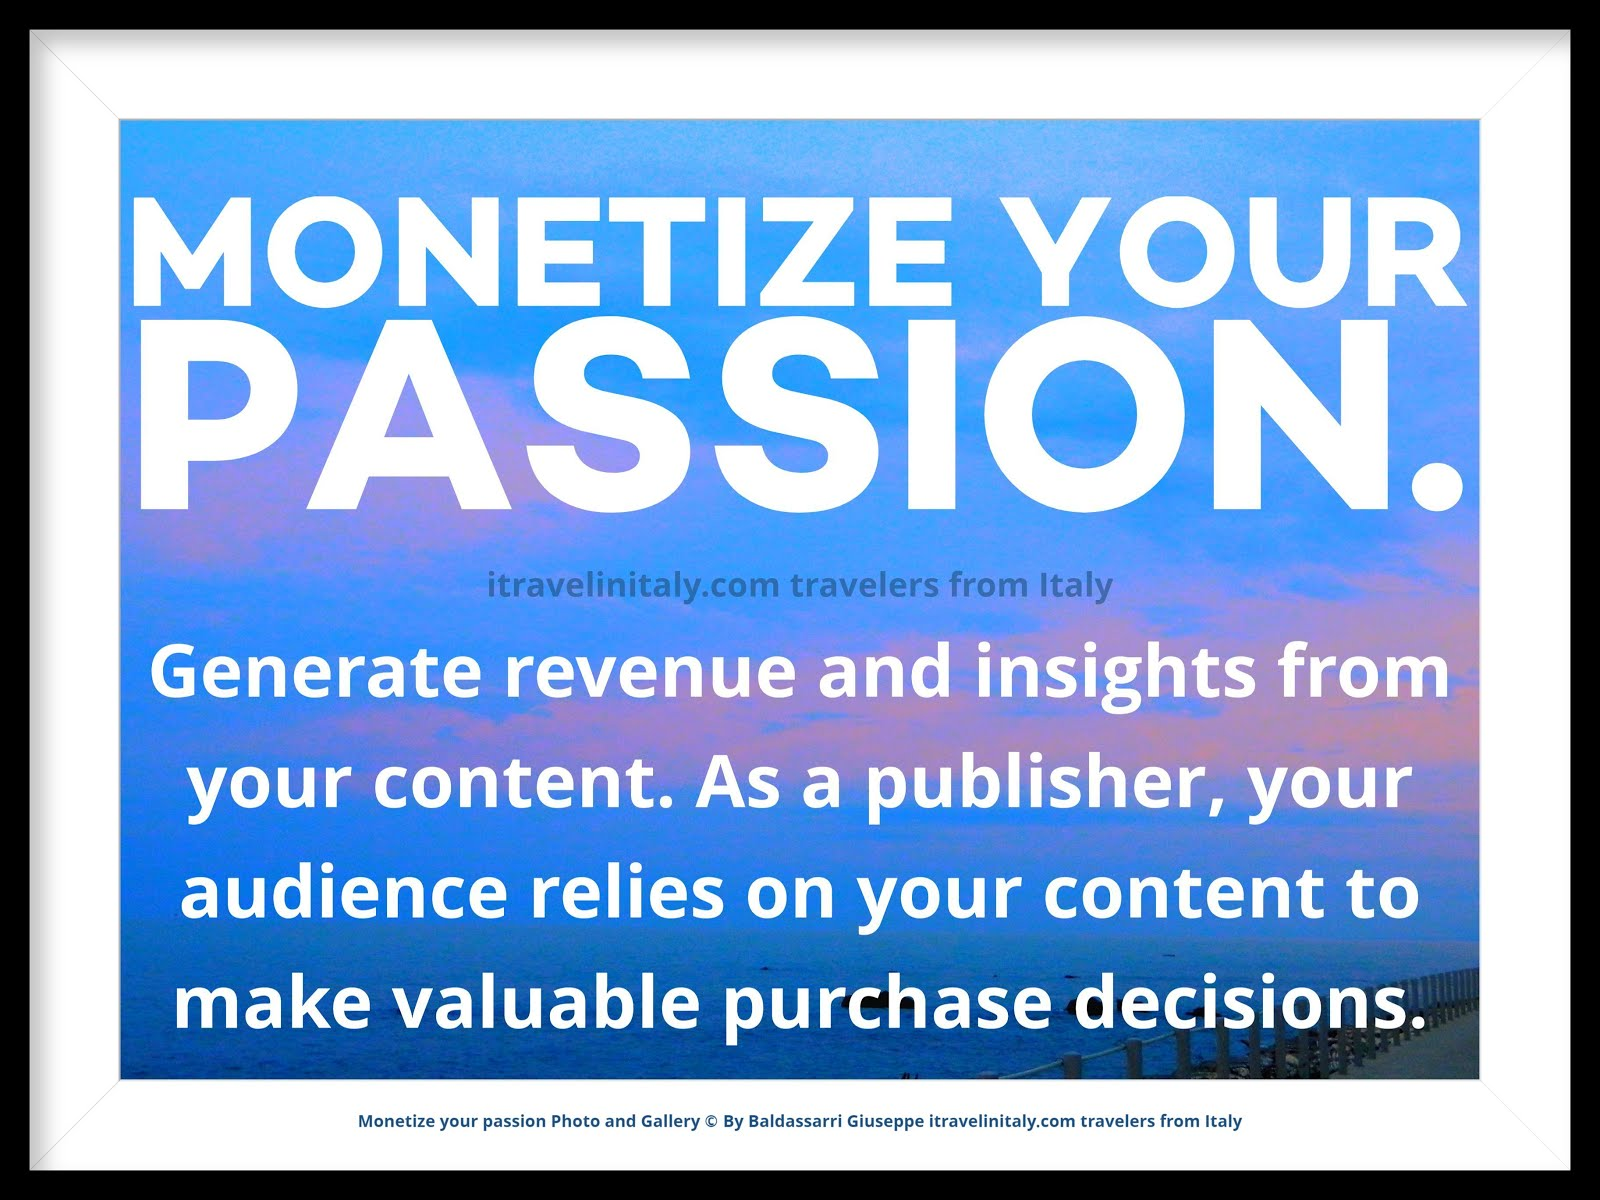 Monetize your passion.